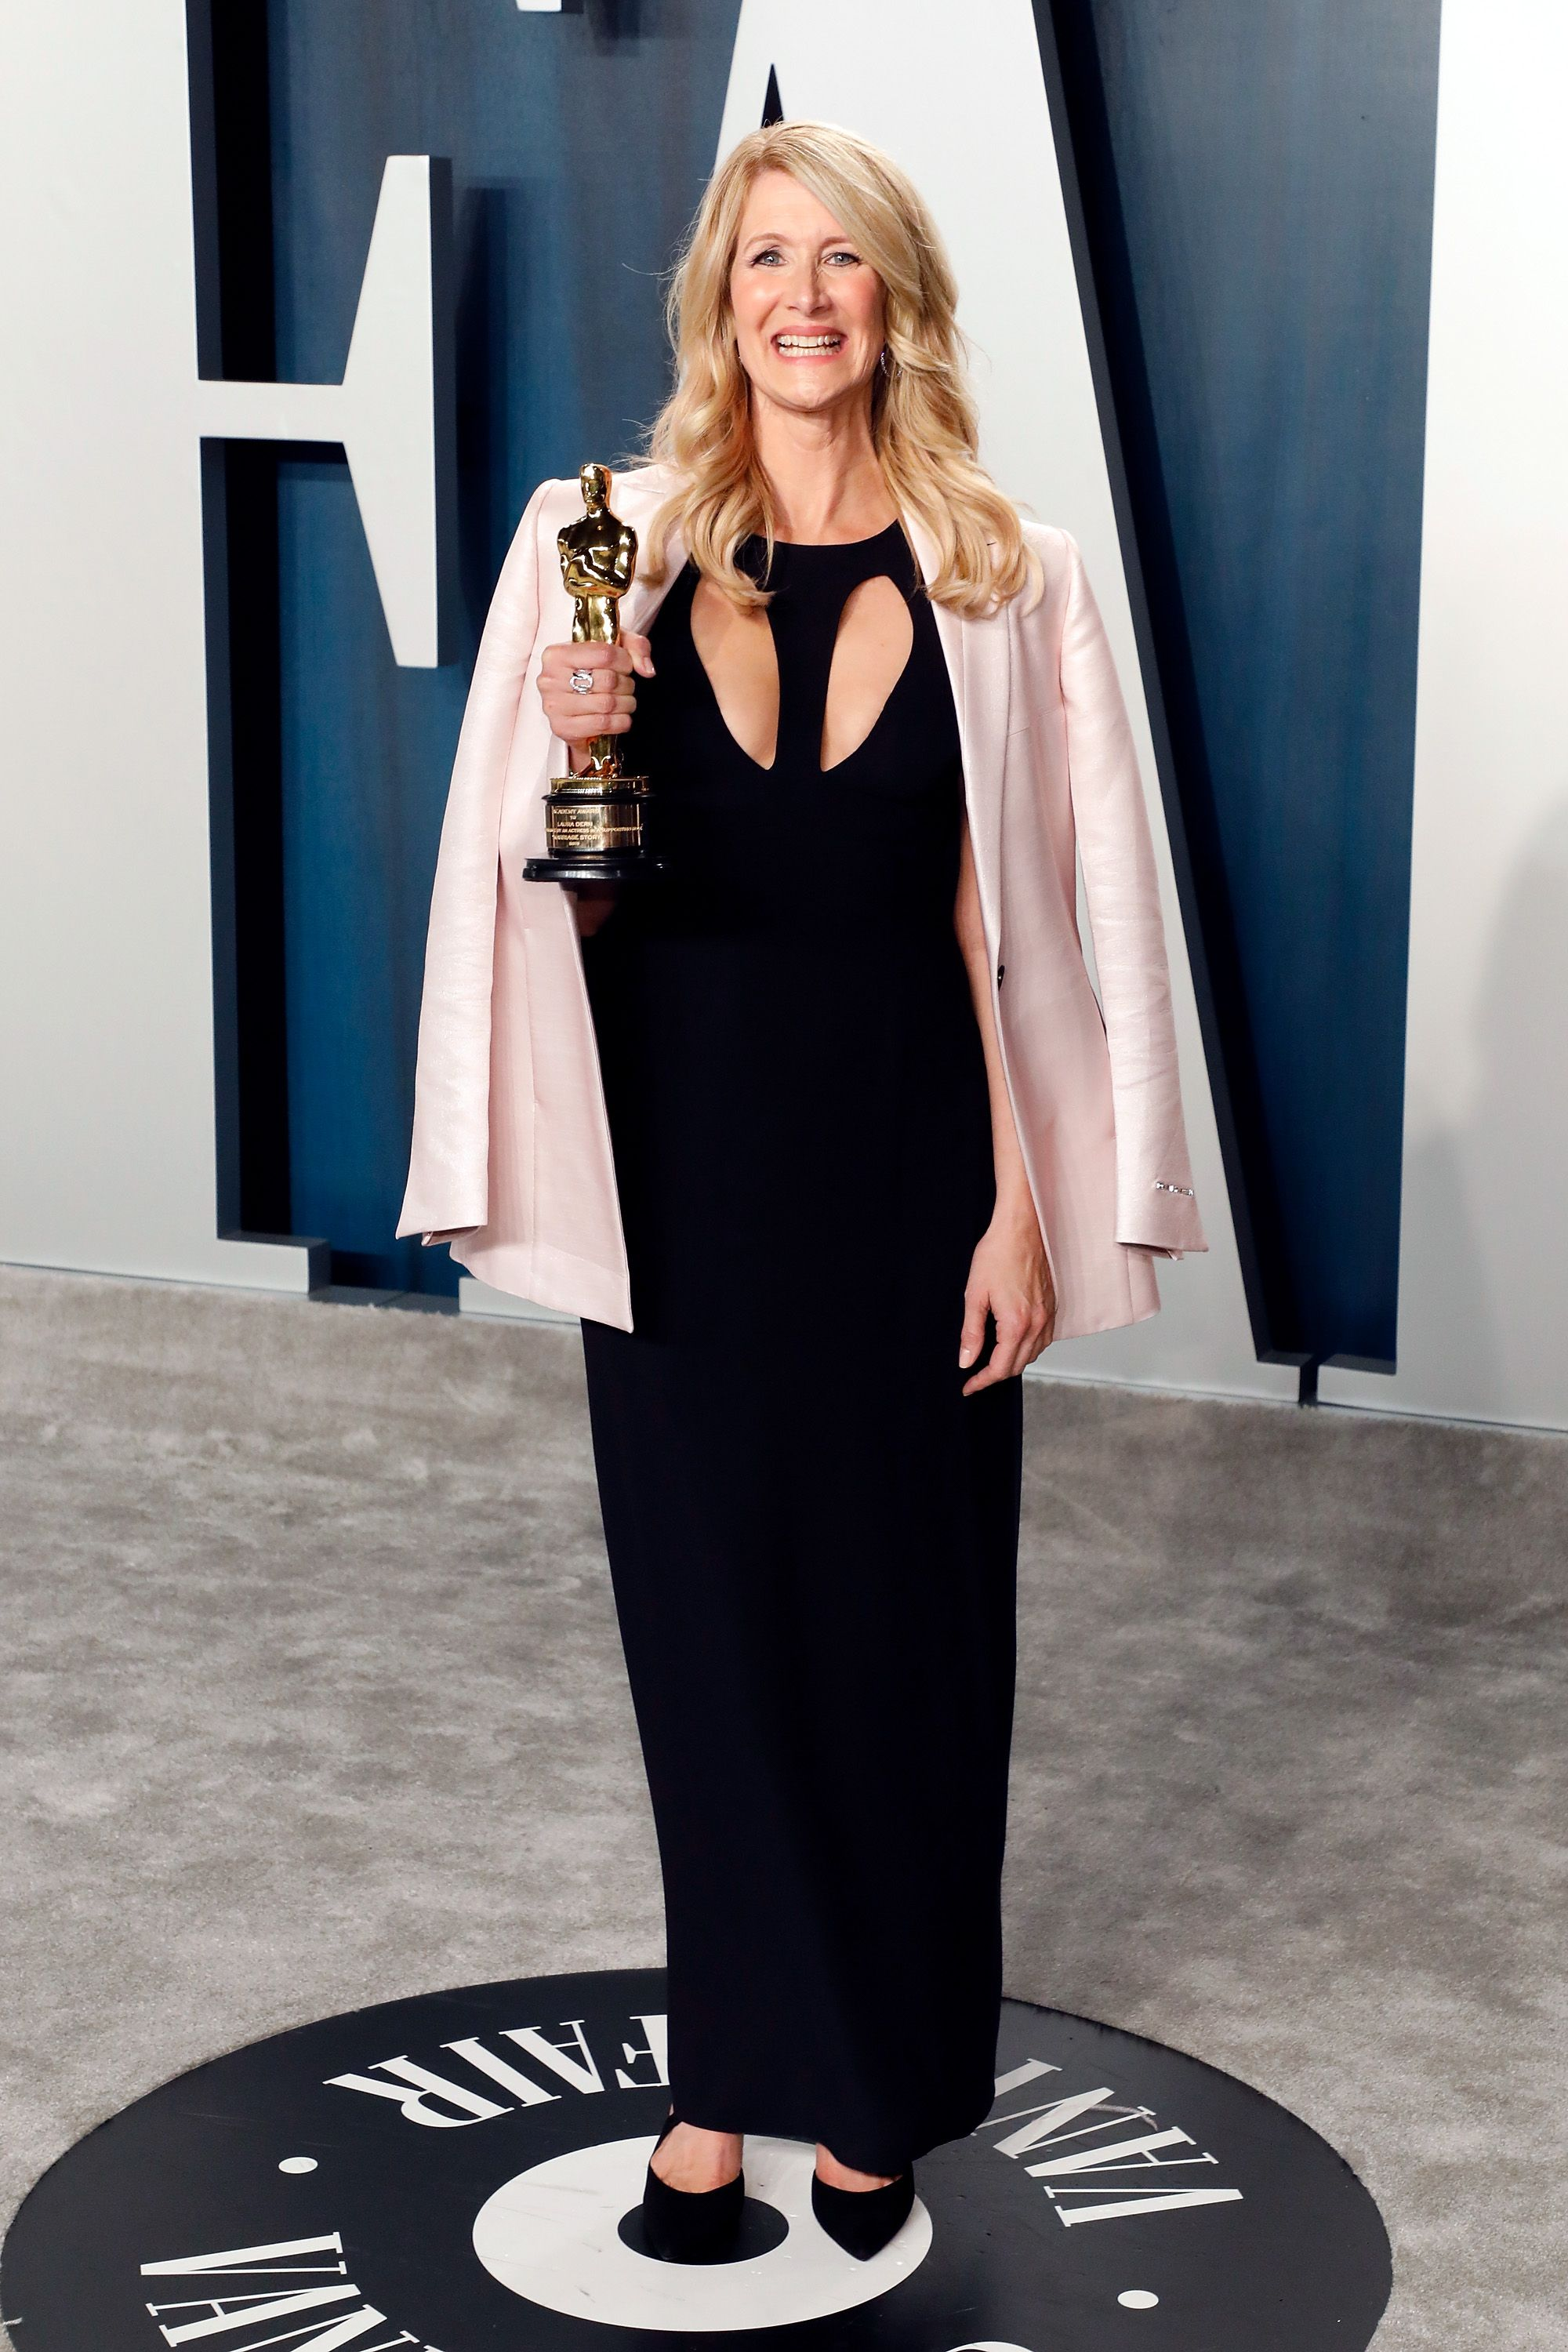 Laura Dern during the Vanity Fair Oscar Party at Wallis Annenberg Center for the Performing Arts on February 09, 2020 in Beverly Hills, California.   Source: Getty Images